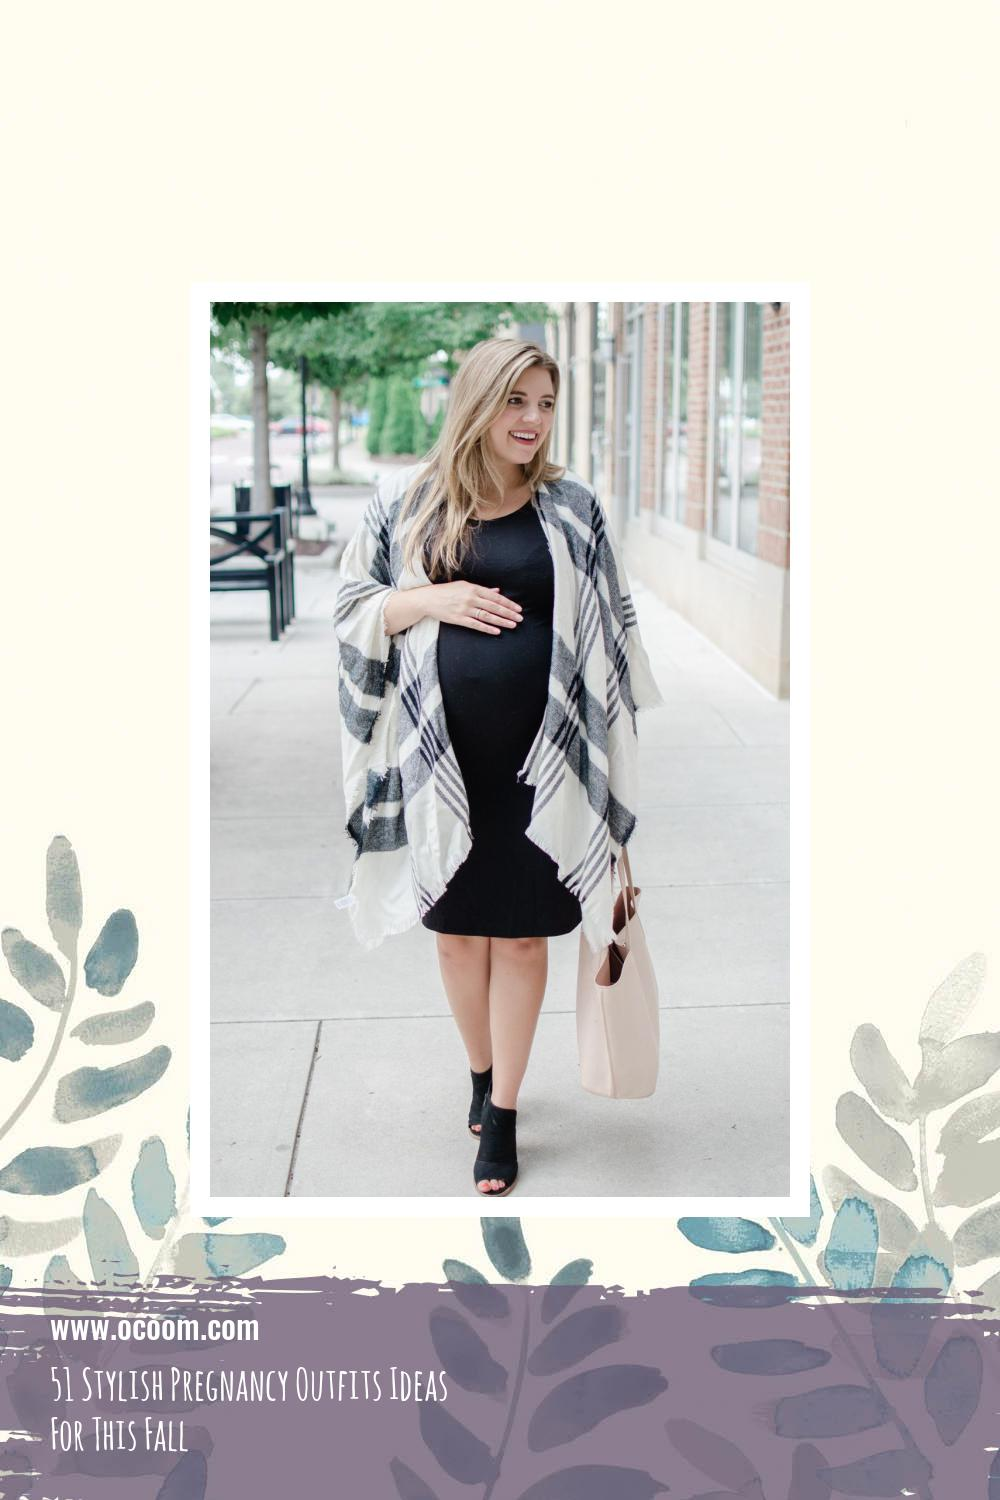 51 Stylish Pregnancy Outfits Ideas For This Fall 46